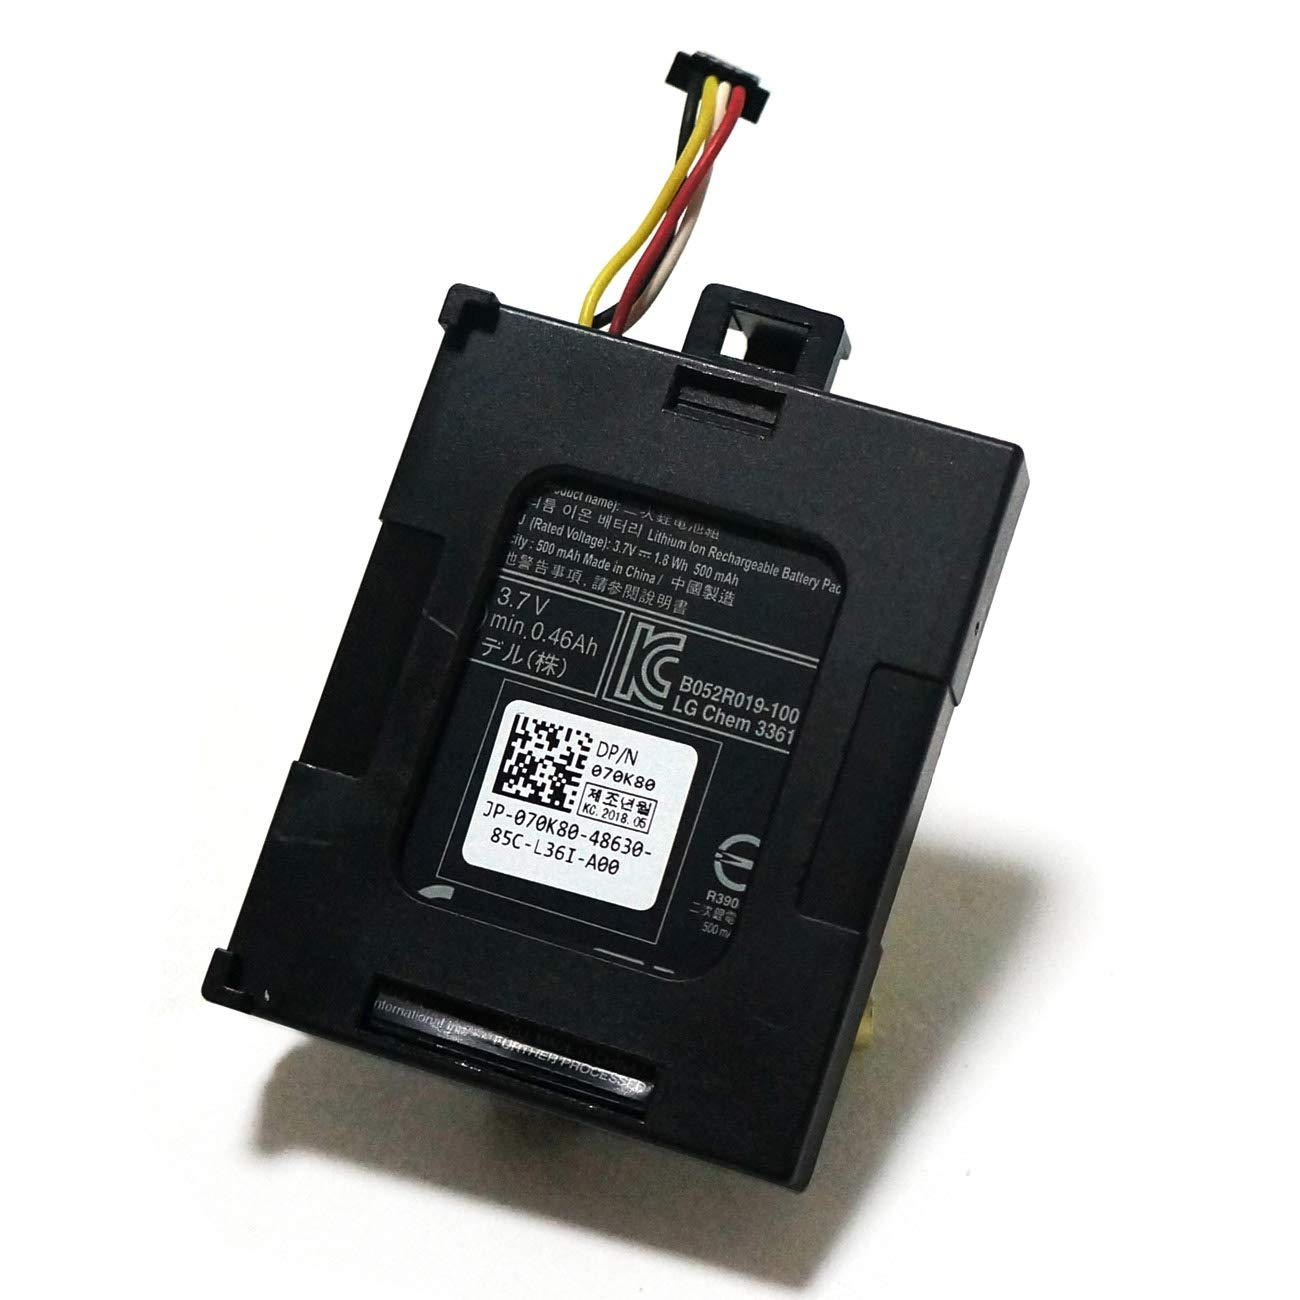 CENTERPOWER 70K80 H132V for New Battery for Dell PERC RAID H710 H710P H730 H810 H830 RAID Controller 3.7V 1.8WH